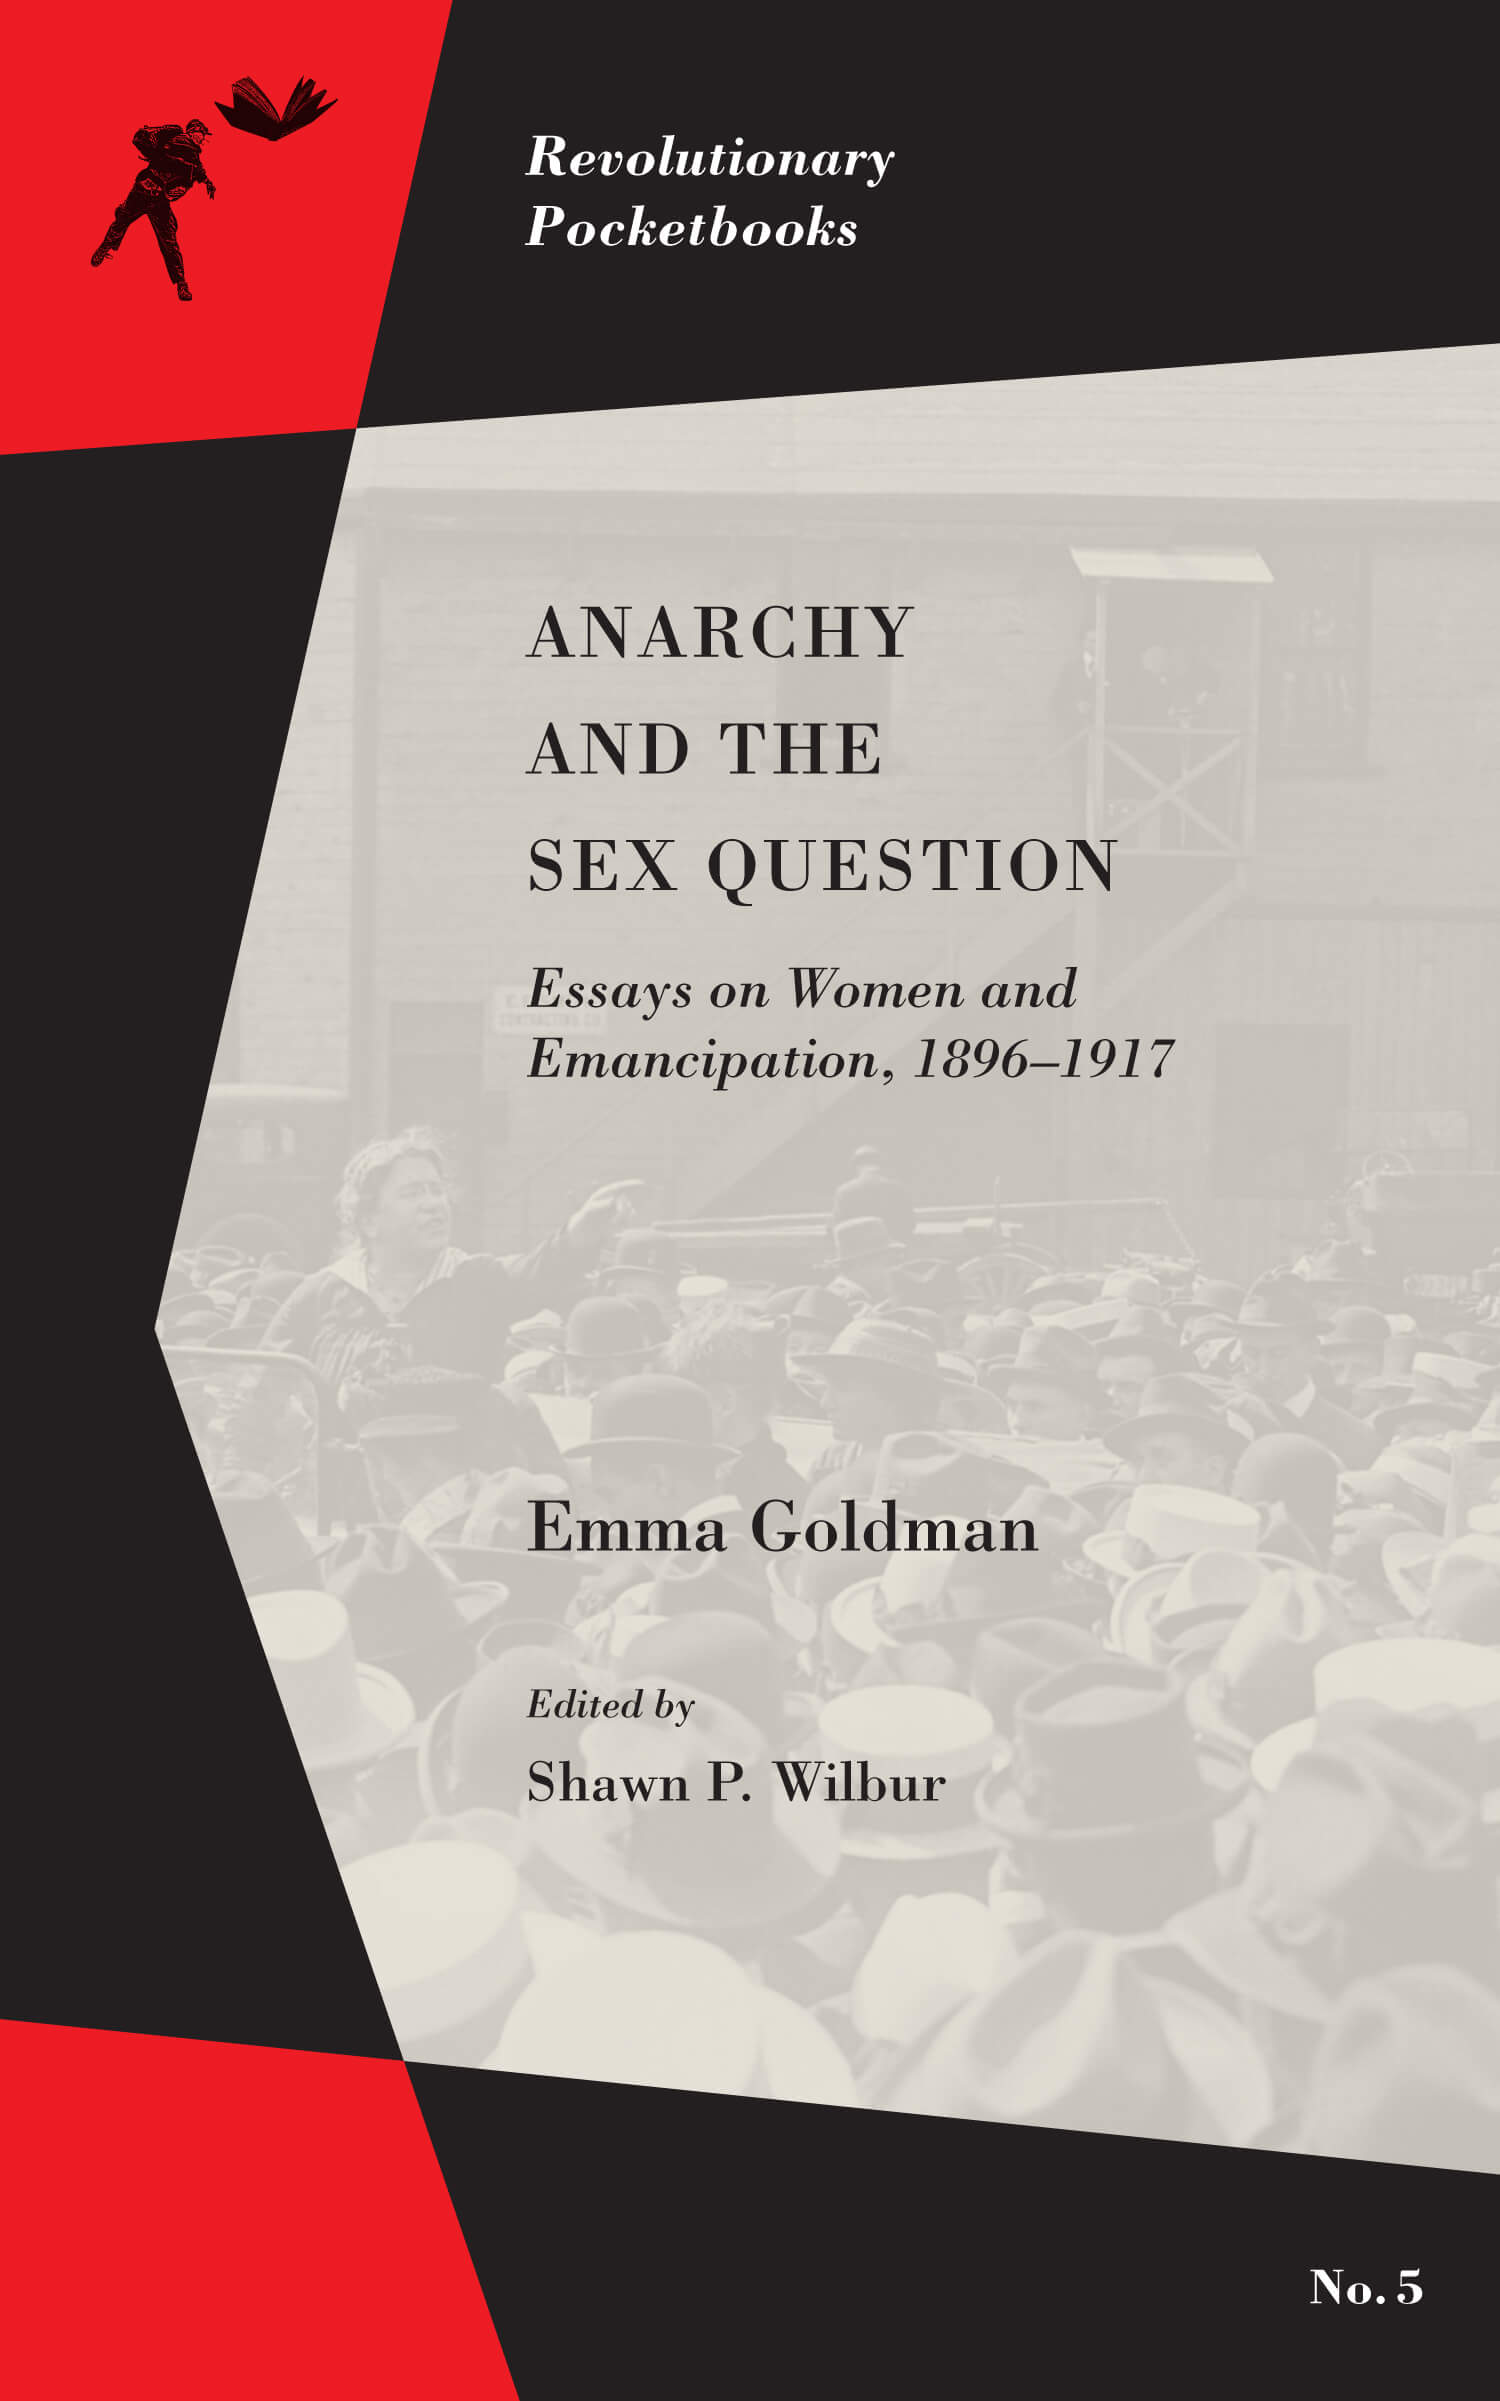 essays on feminism s feminism essay roxane gay on ldquo bad  feminism product categories pm press uk anarchy and the sex question